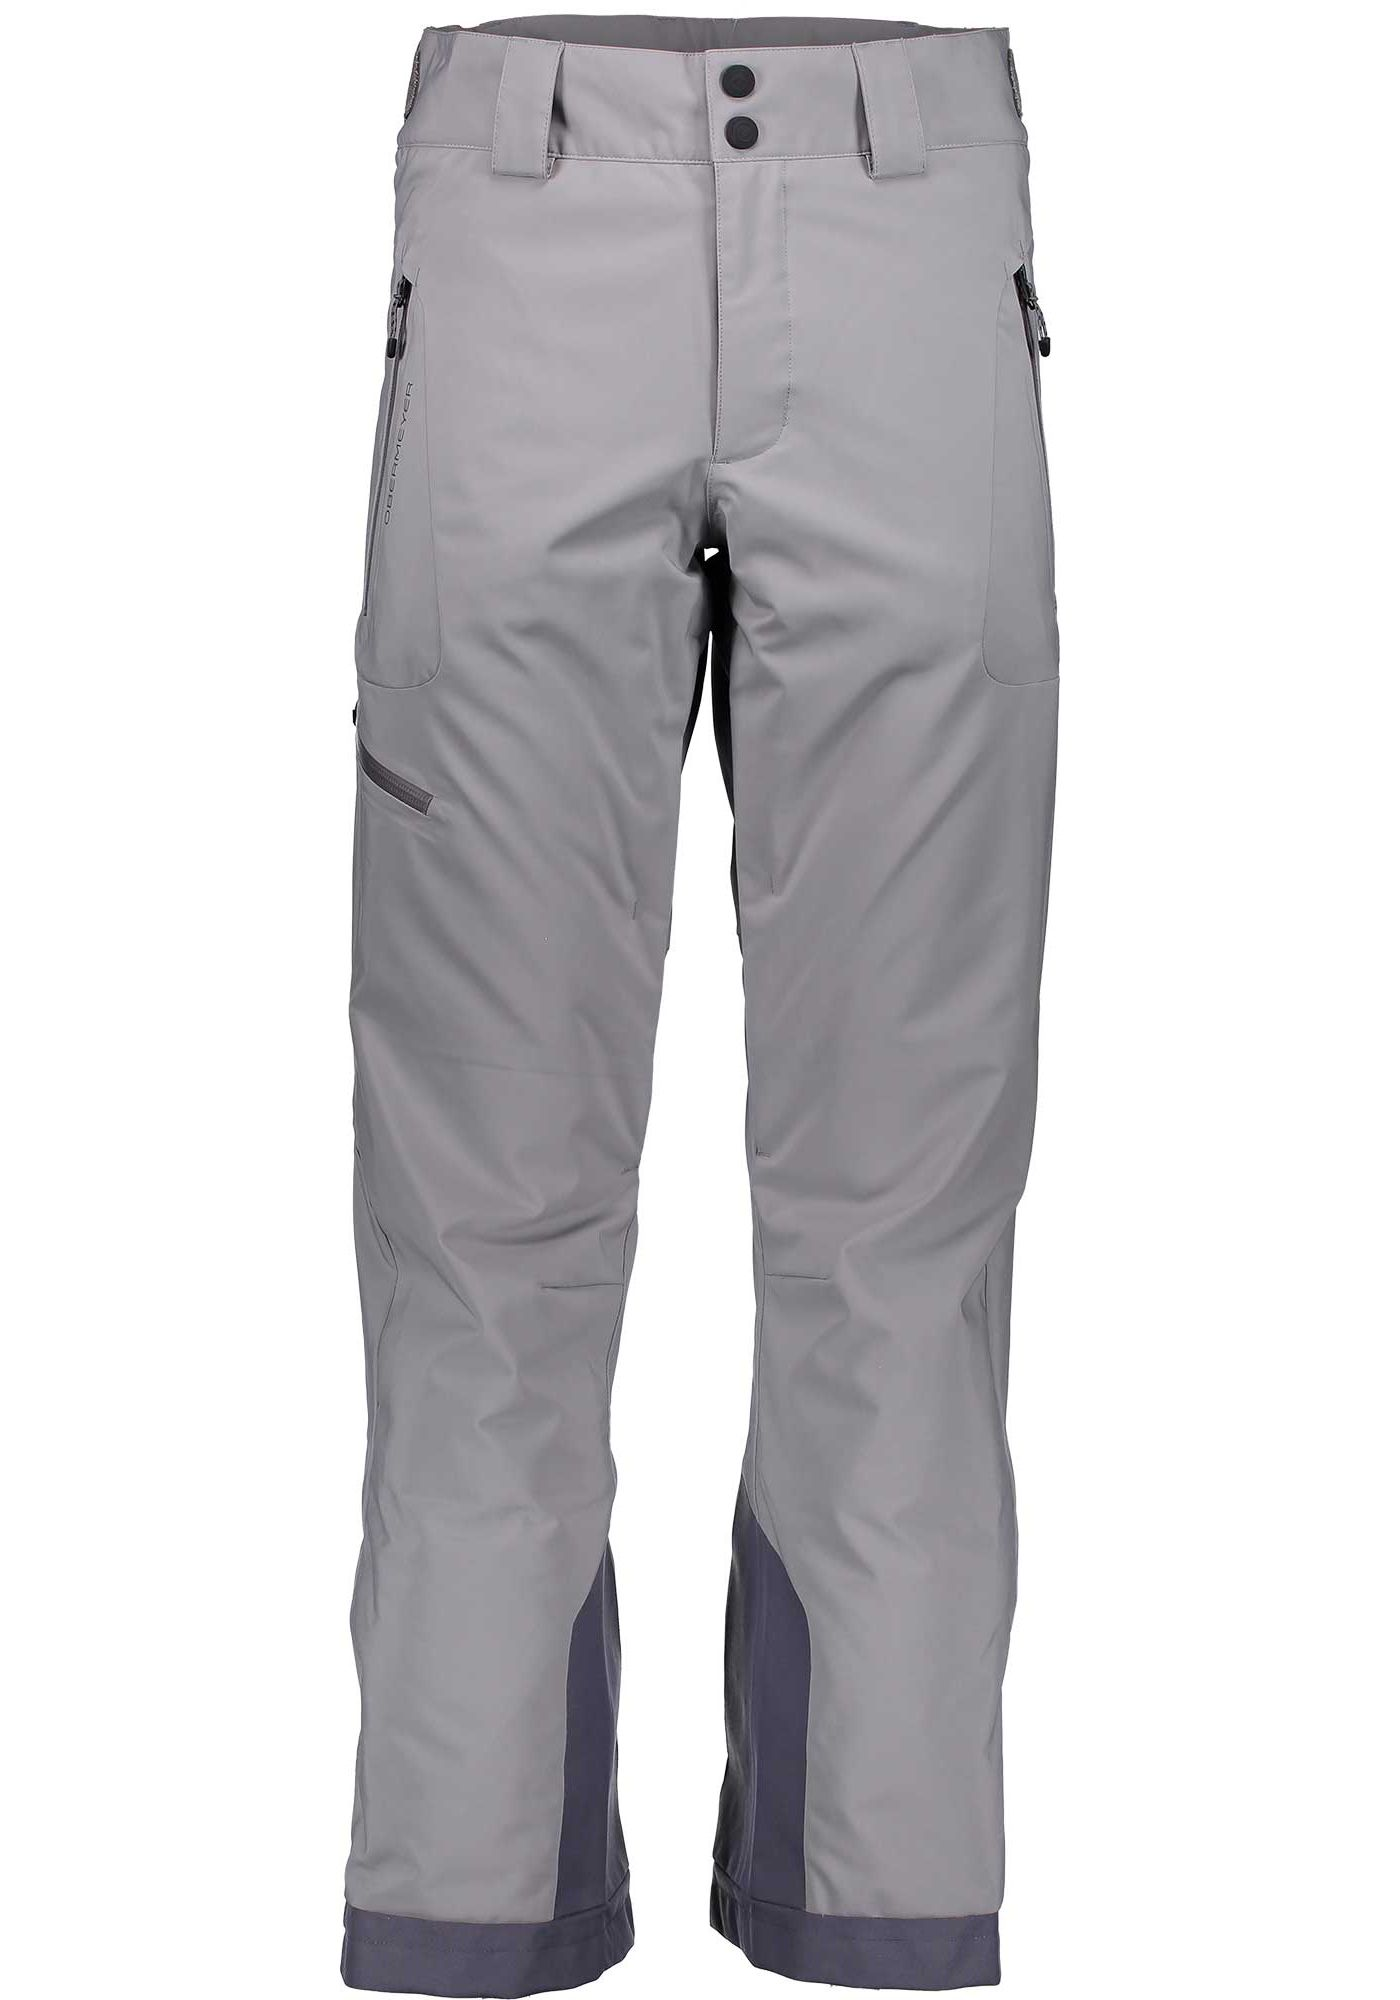 Obermeyer Men's Force Ski Pants